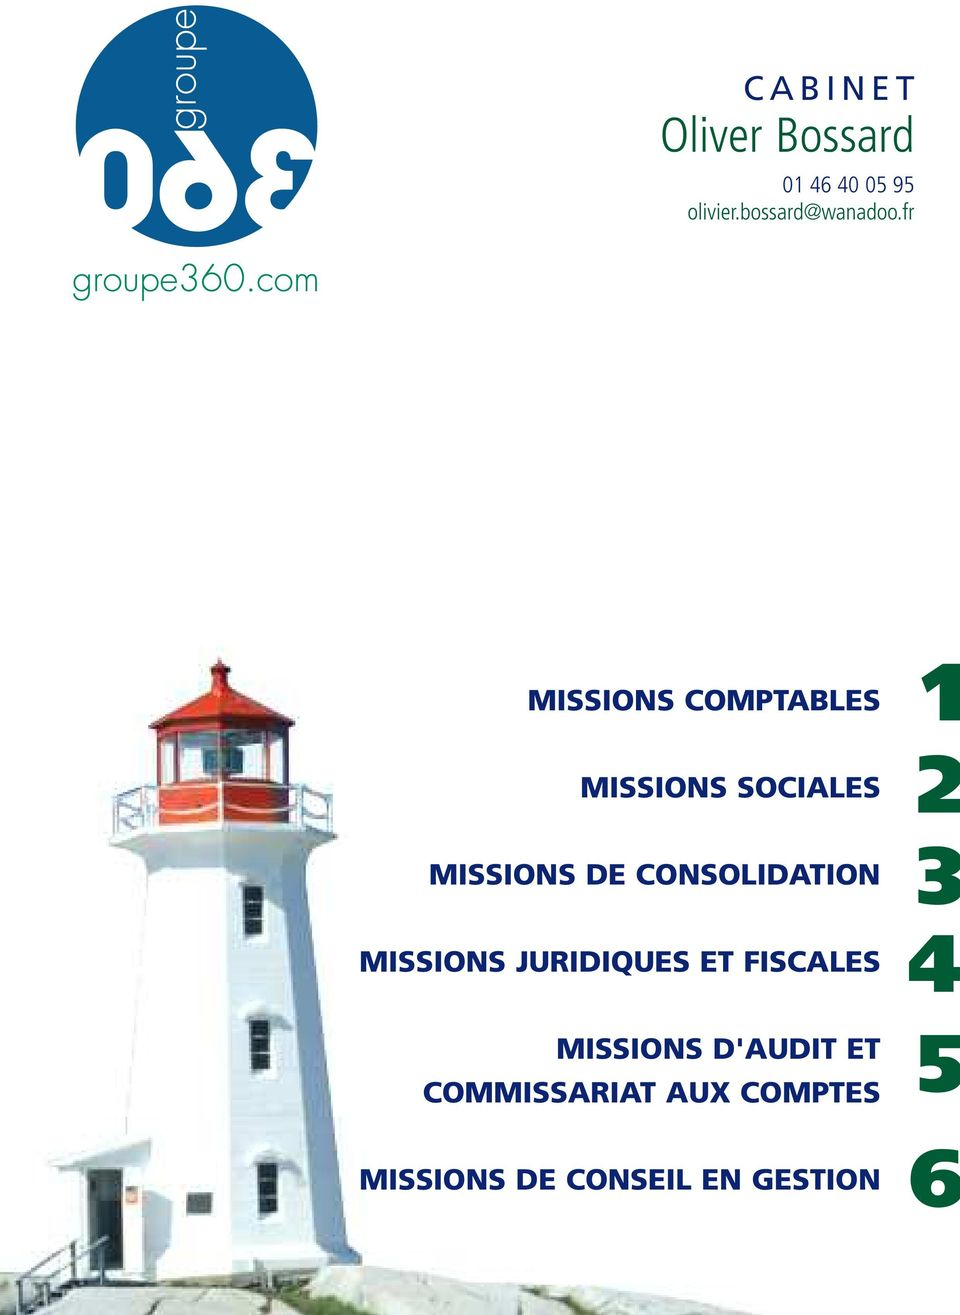 CONSOLIDATION MISSIONS JURIDIQUES ET FISCALES 1 2 3 4